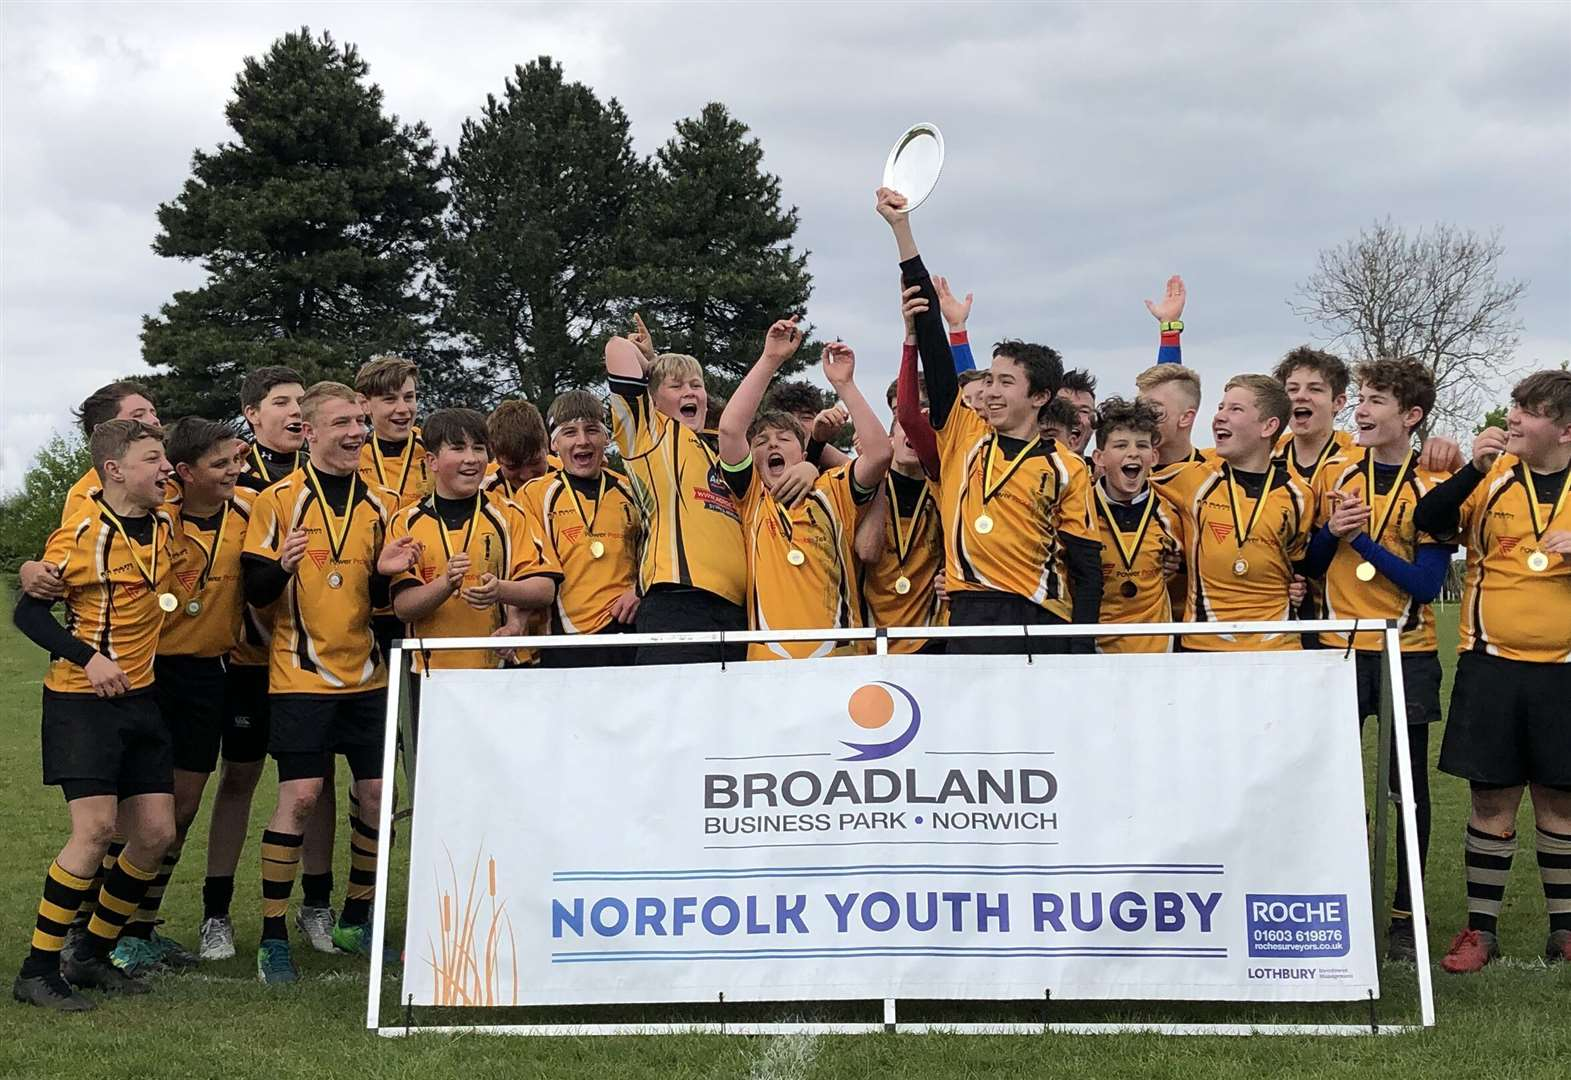 Underdogs come from behind to triumph in plate final at West Norfolk Rugby Club